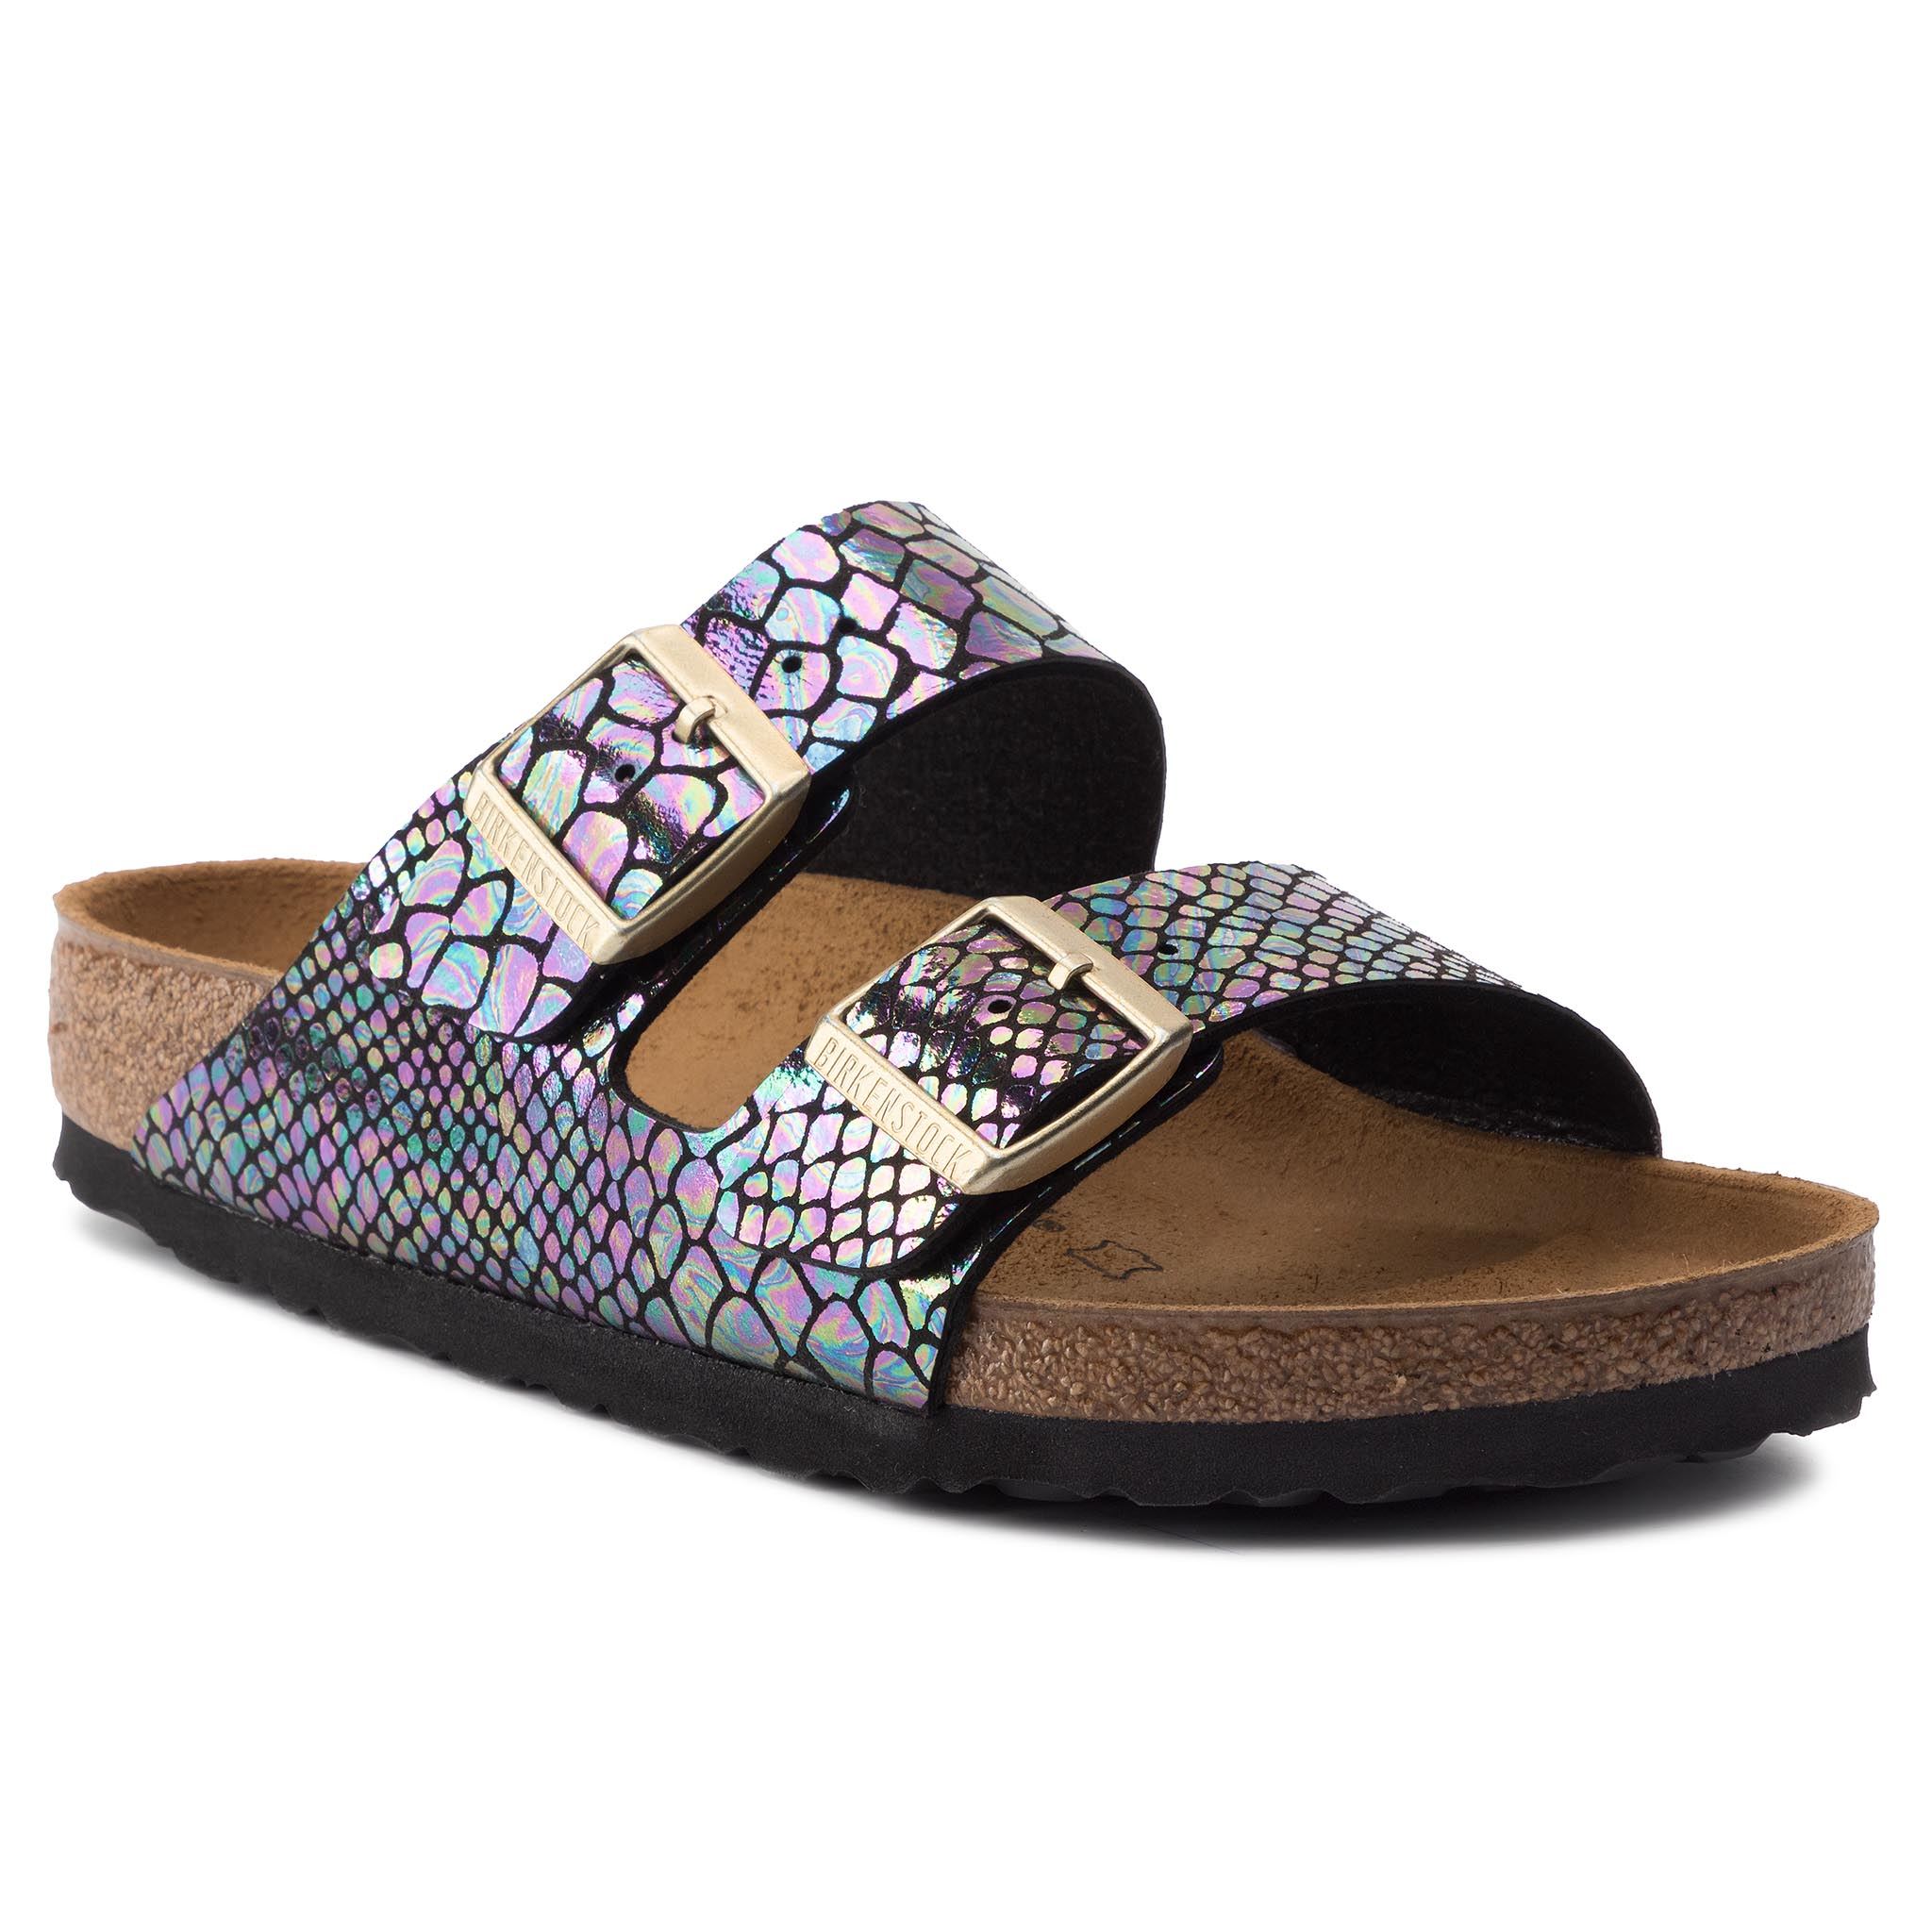 Șlapi BIRKENSTOCK - Arizona Bs 1003462 Shiny Snake Black Multicolor